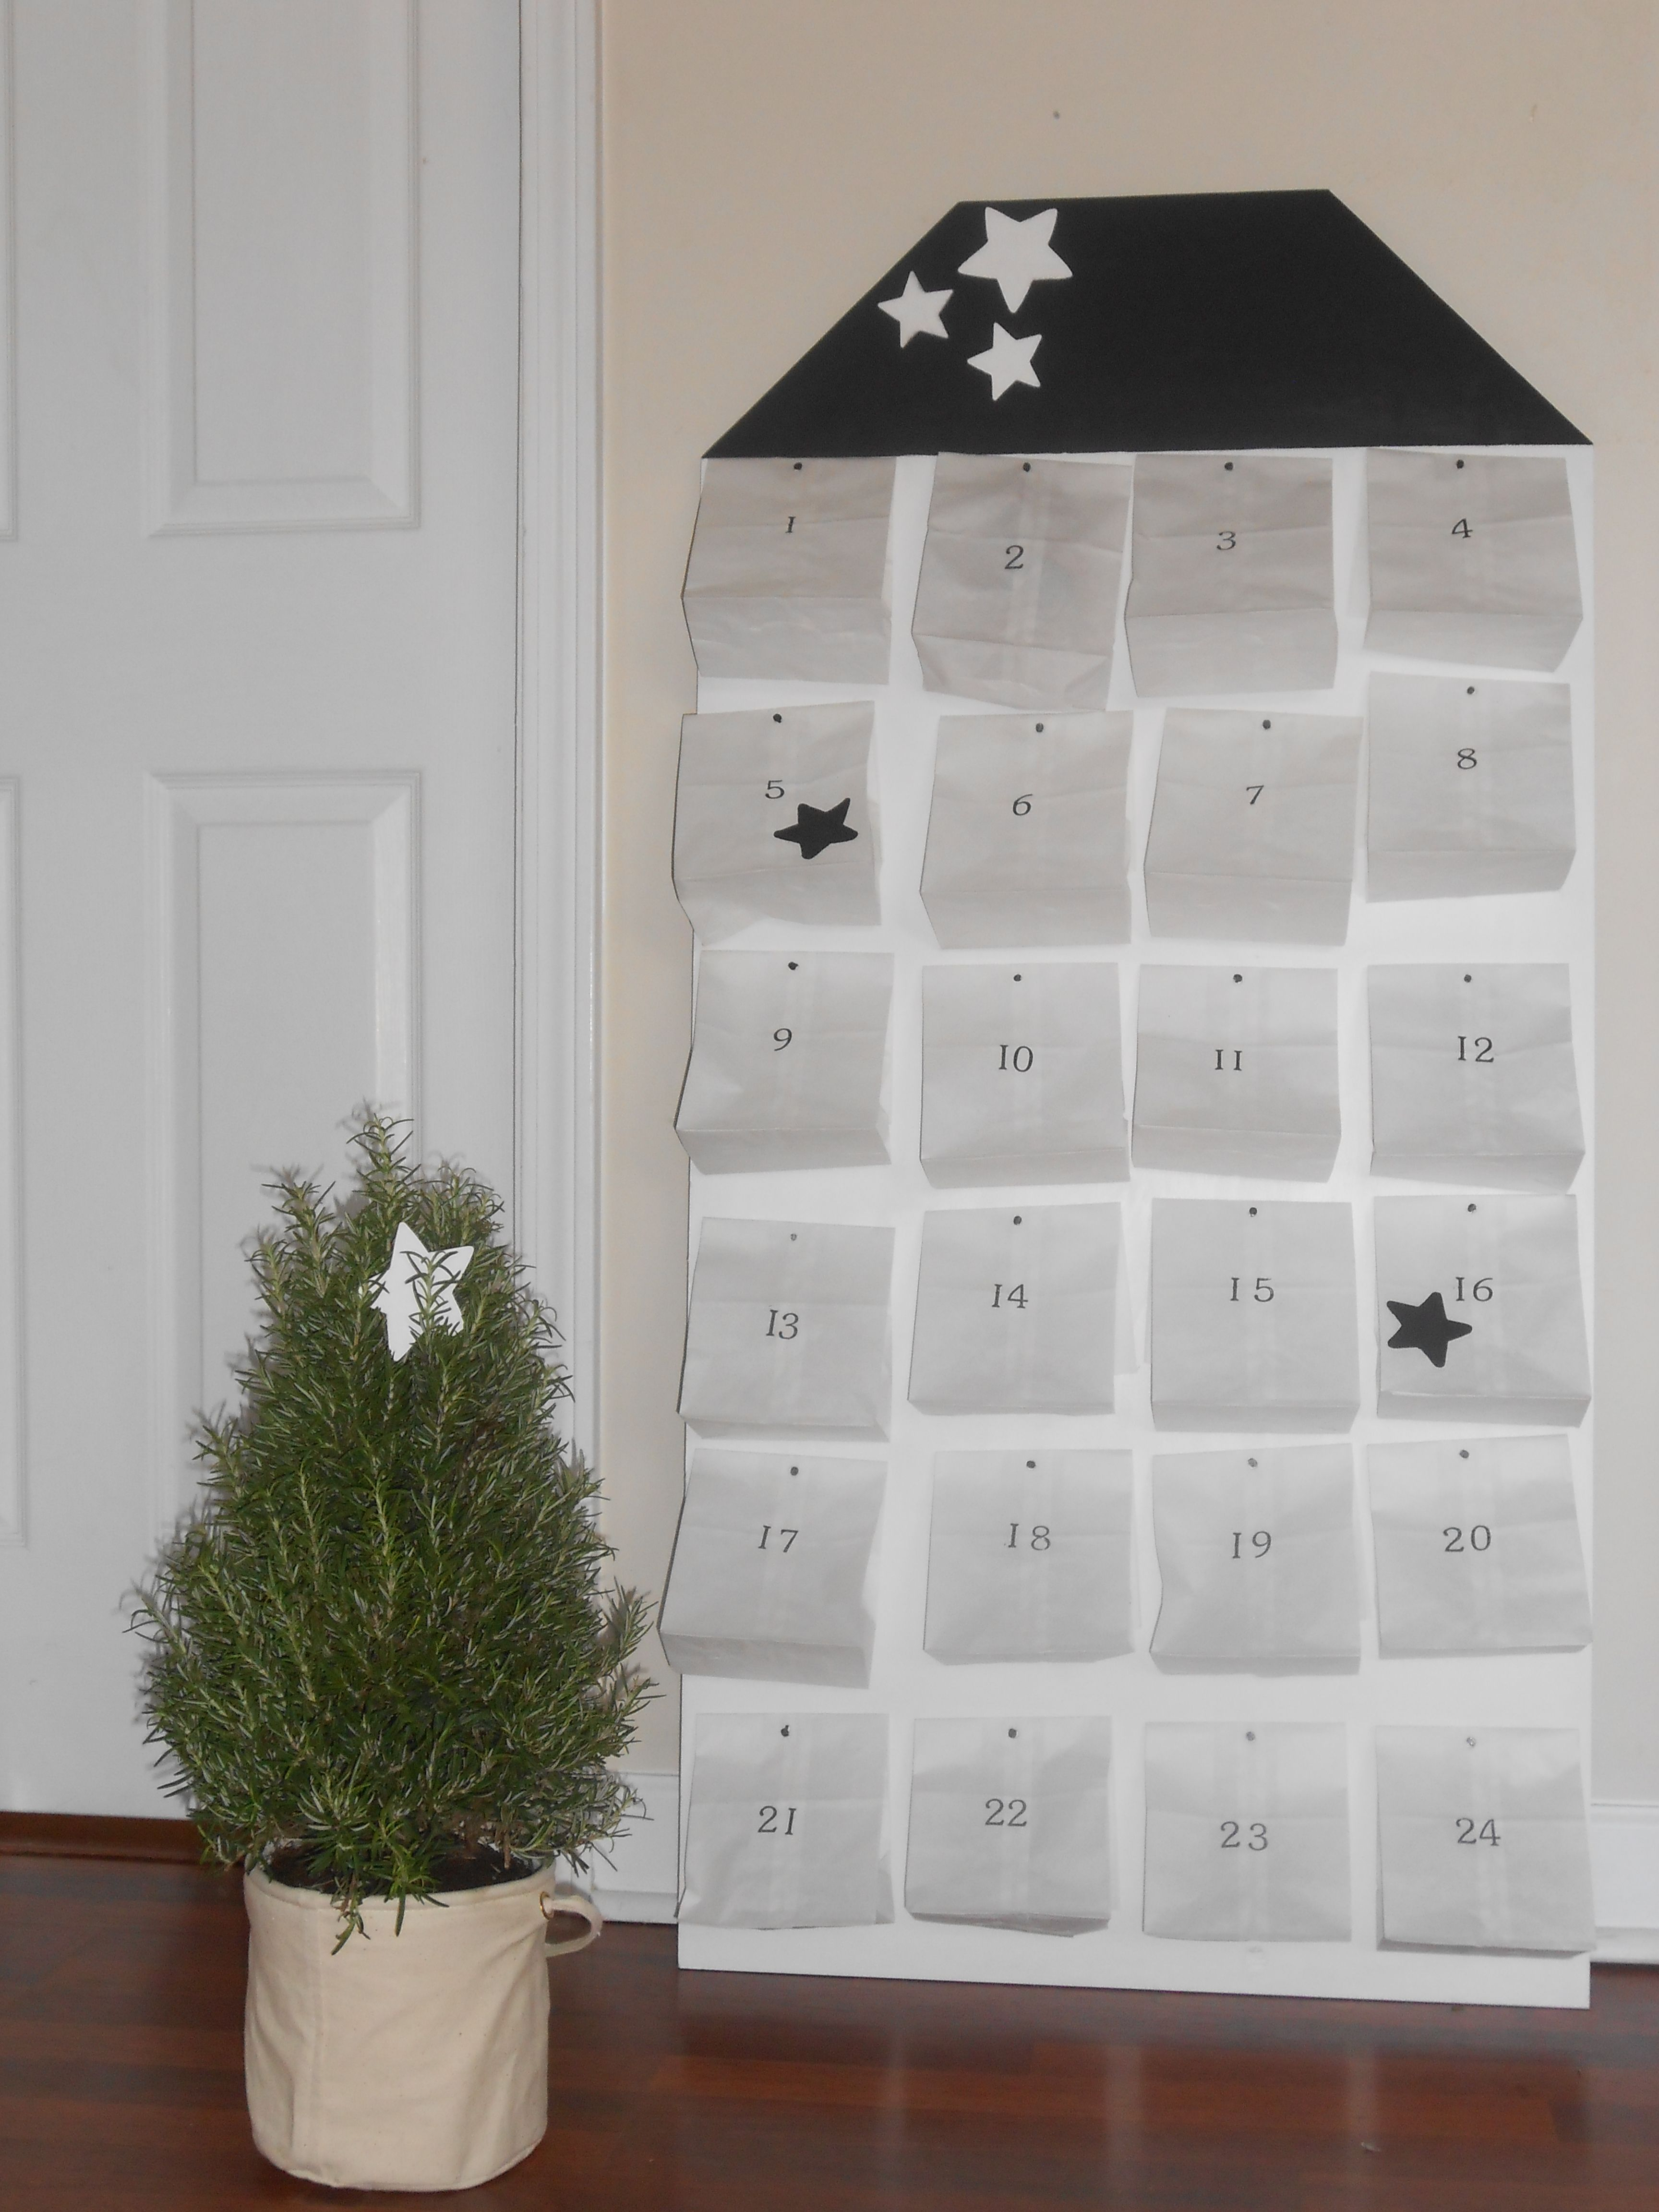 Our DIY advent calender